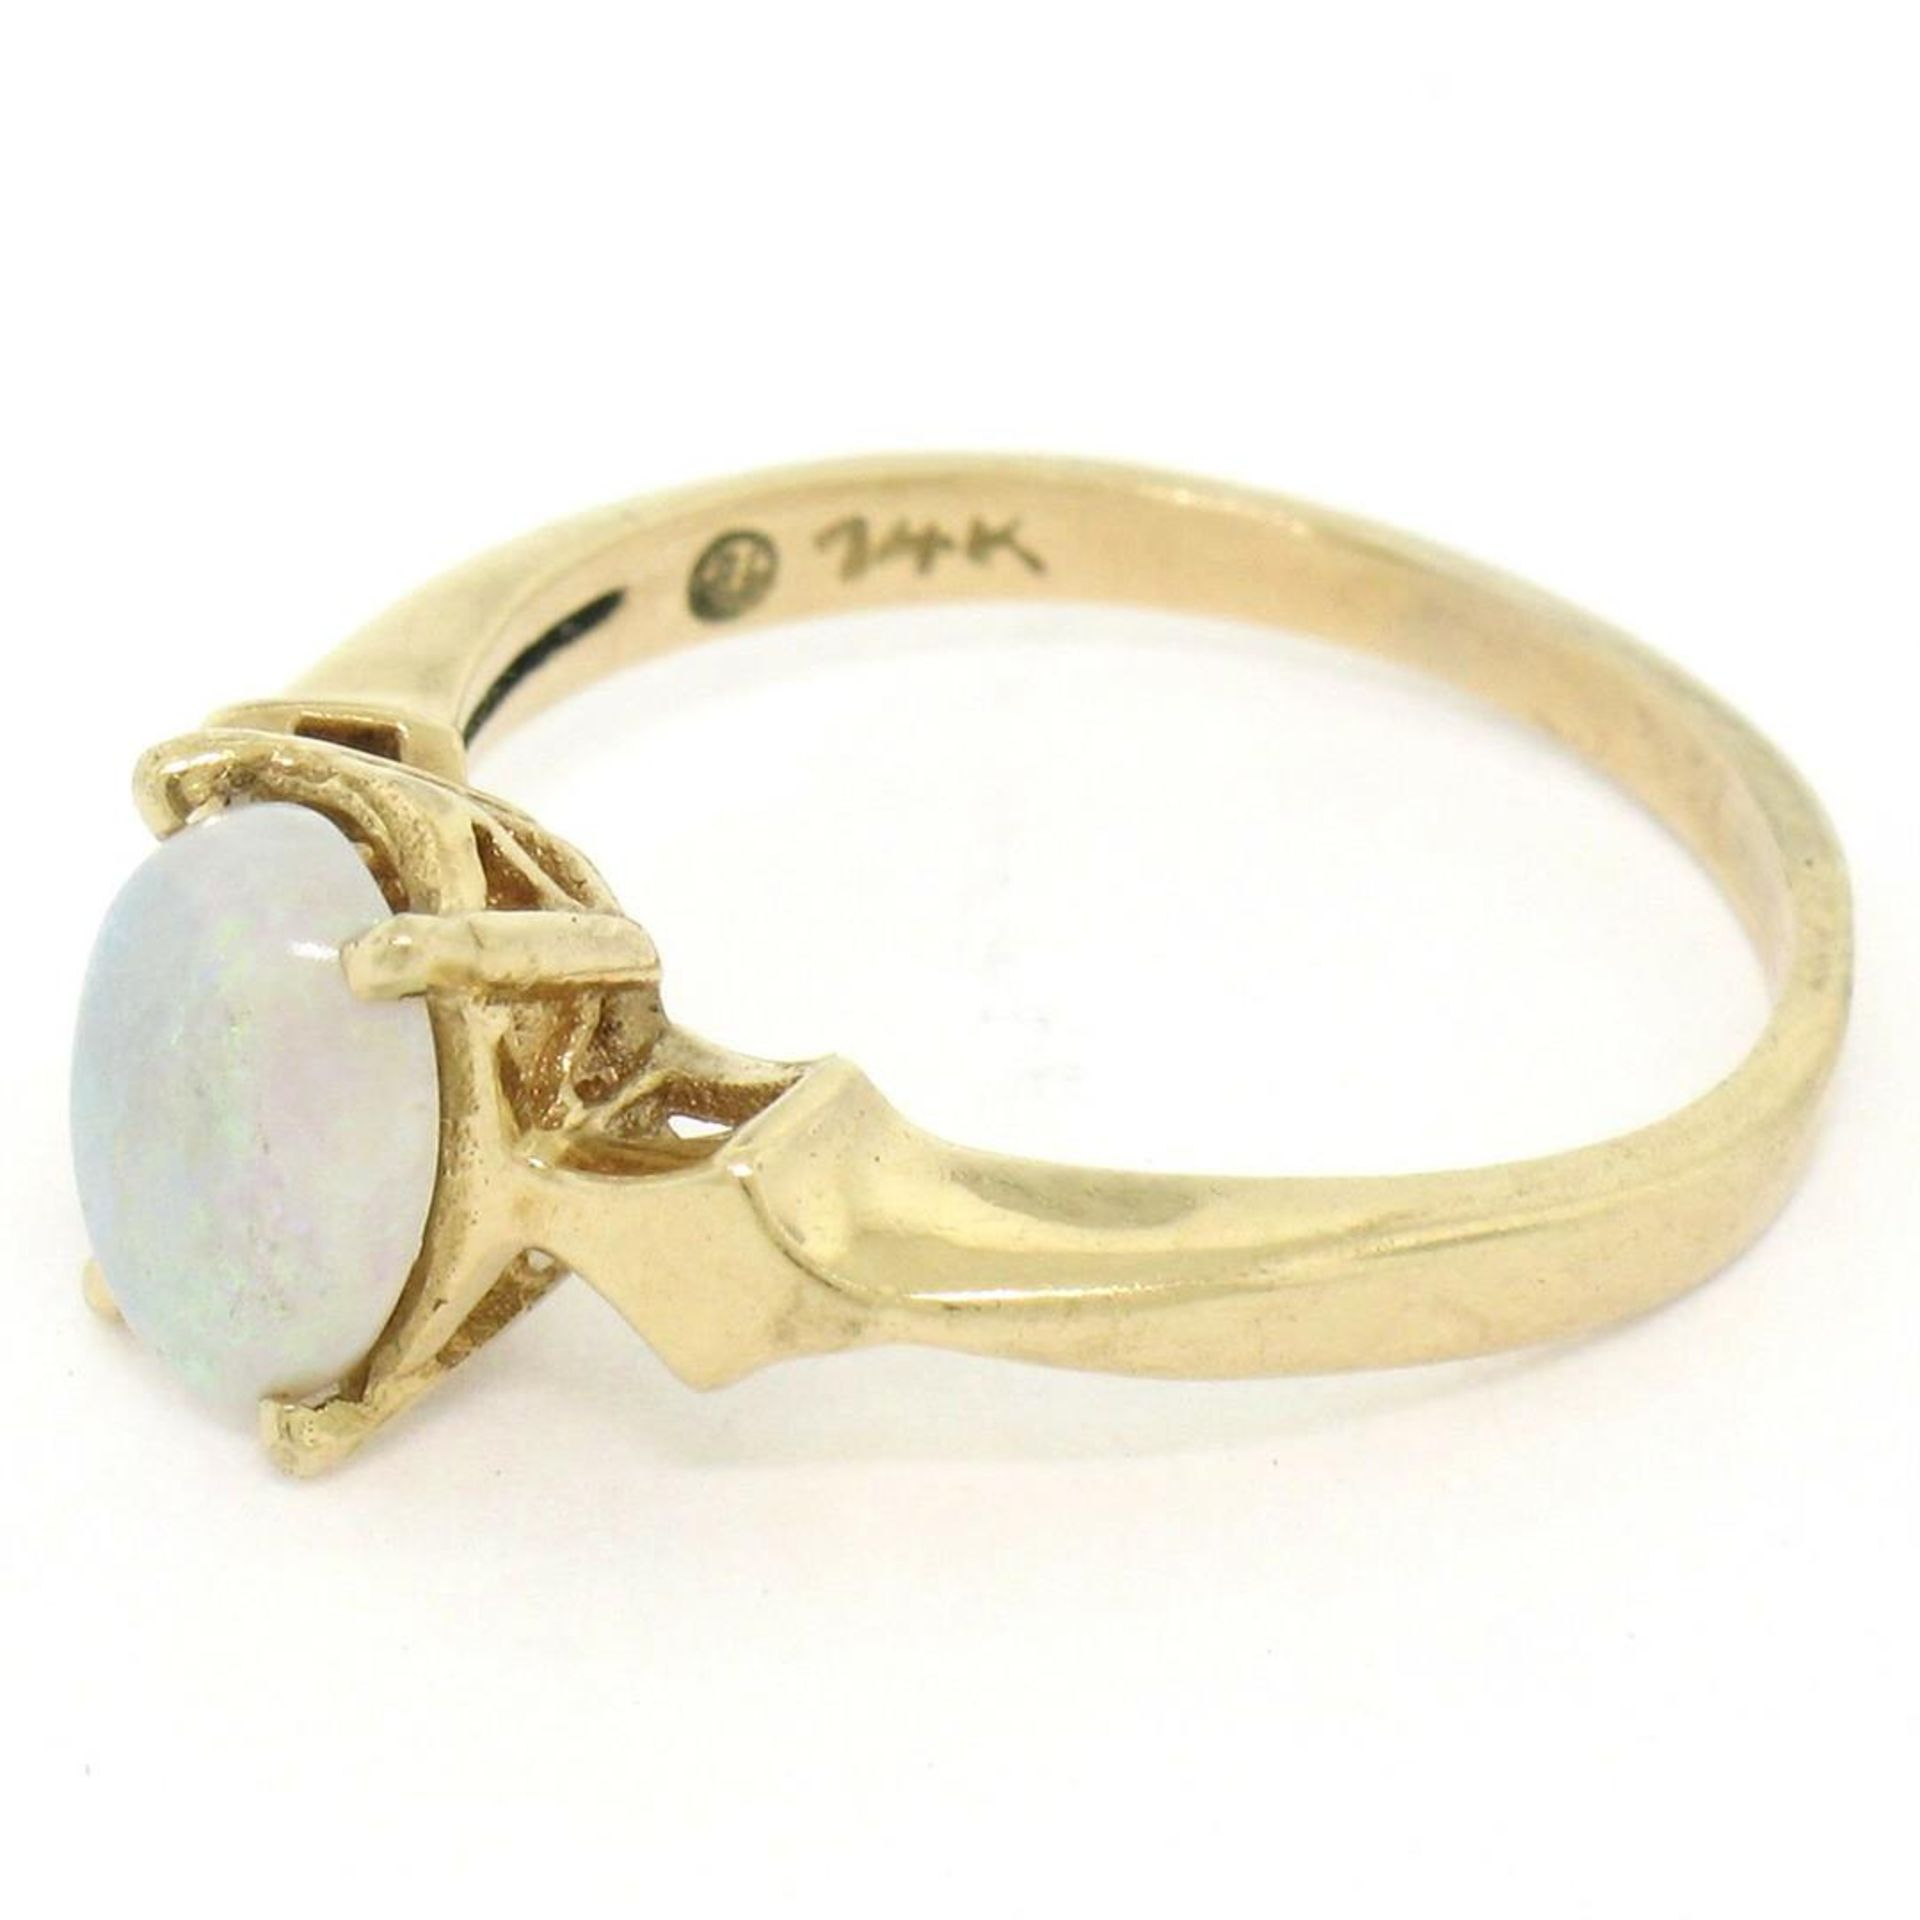 Vintage 14K Yellow Gold 0.65ct Petite Oval Cabochon Opal Solitaire Ring Size 6 - Image 3 of 9